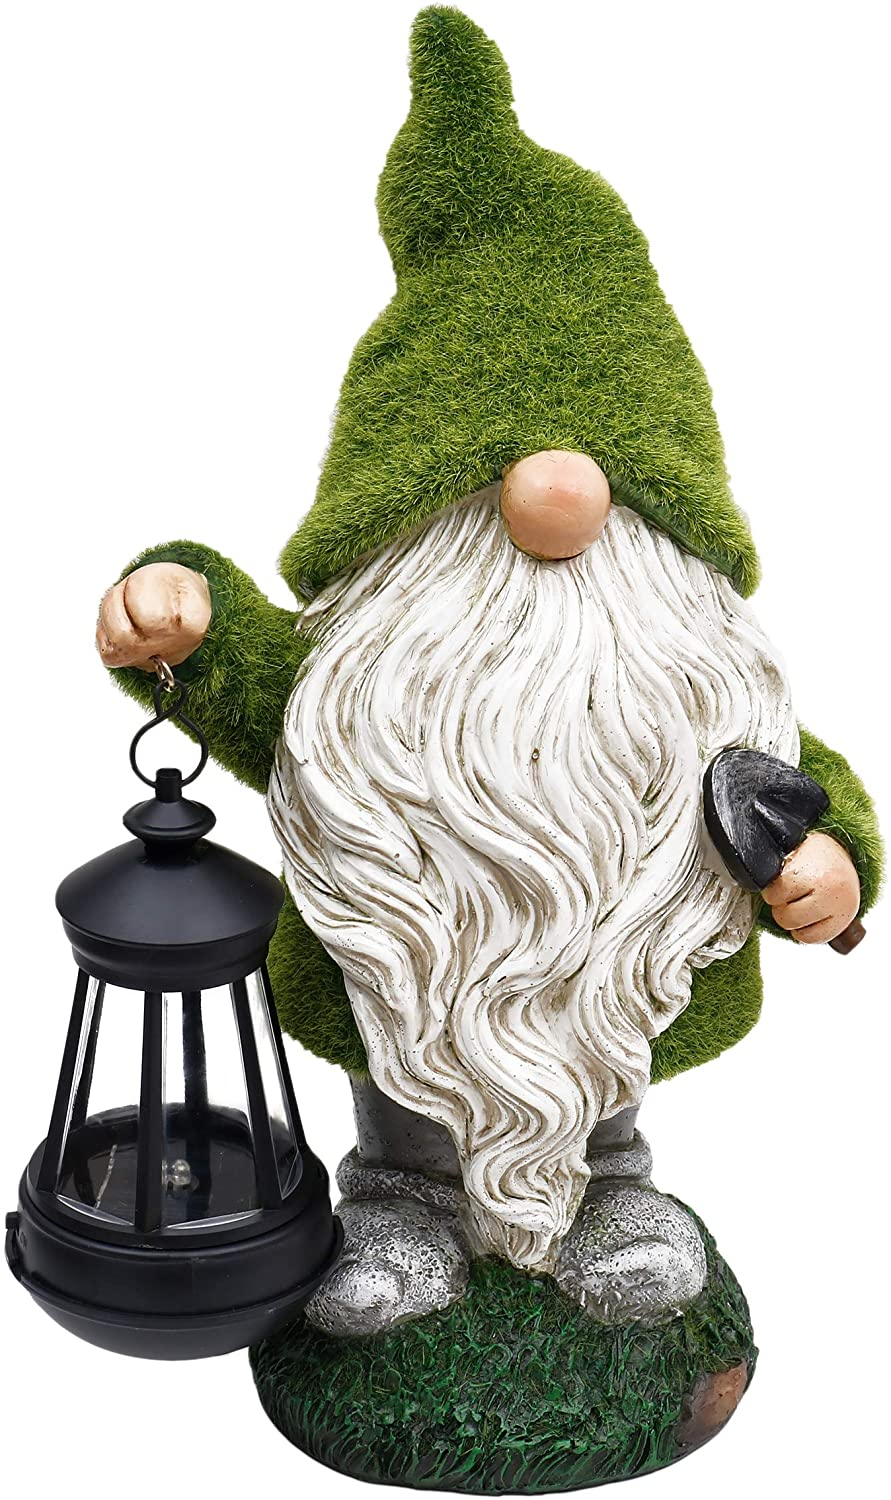 Teresa's Collections Flocked Garden Gnome With Solar Lights